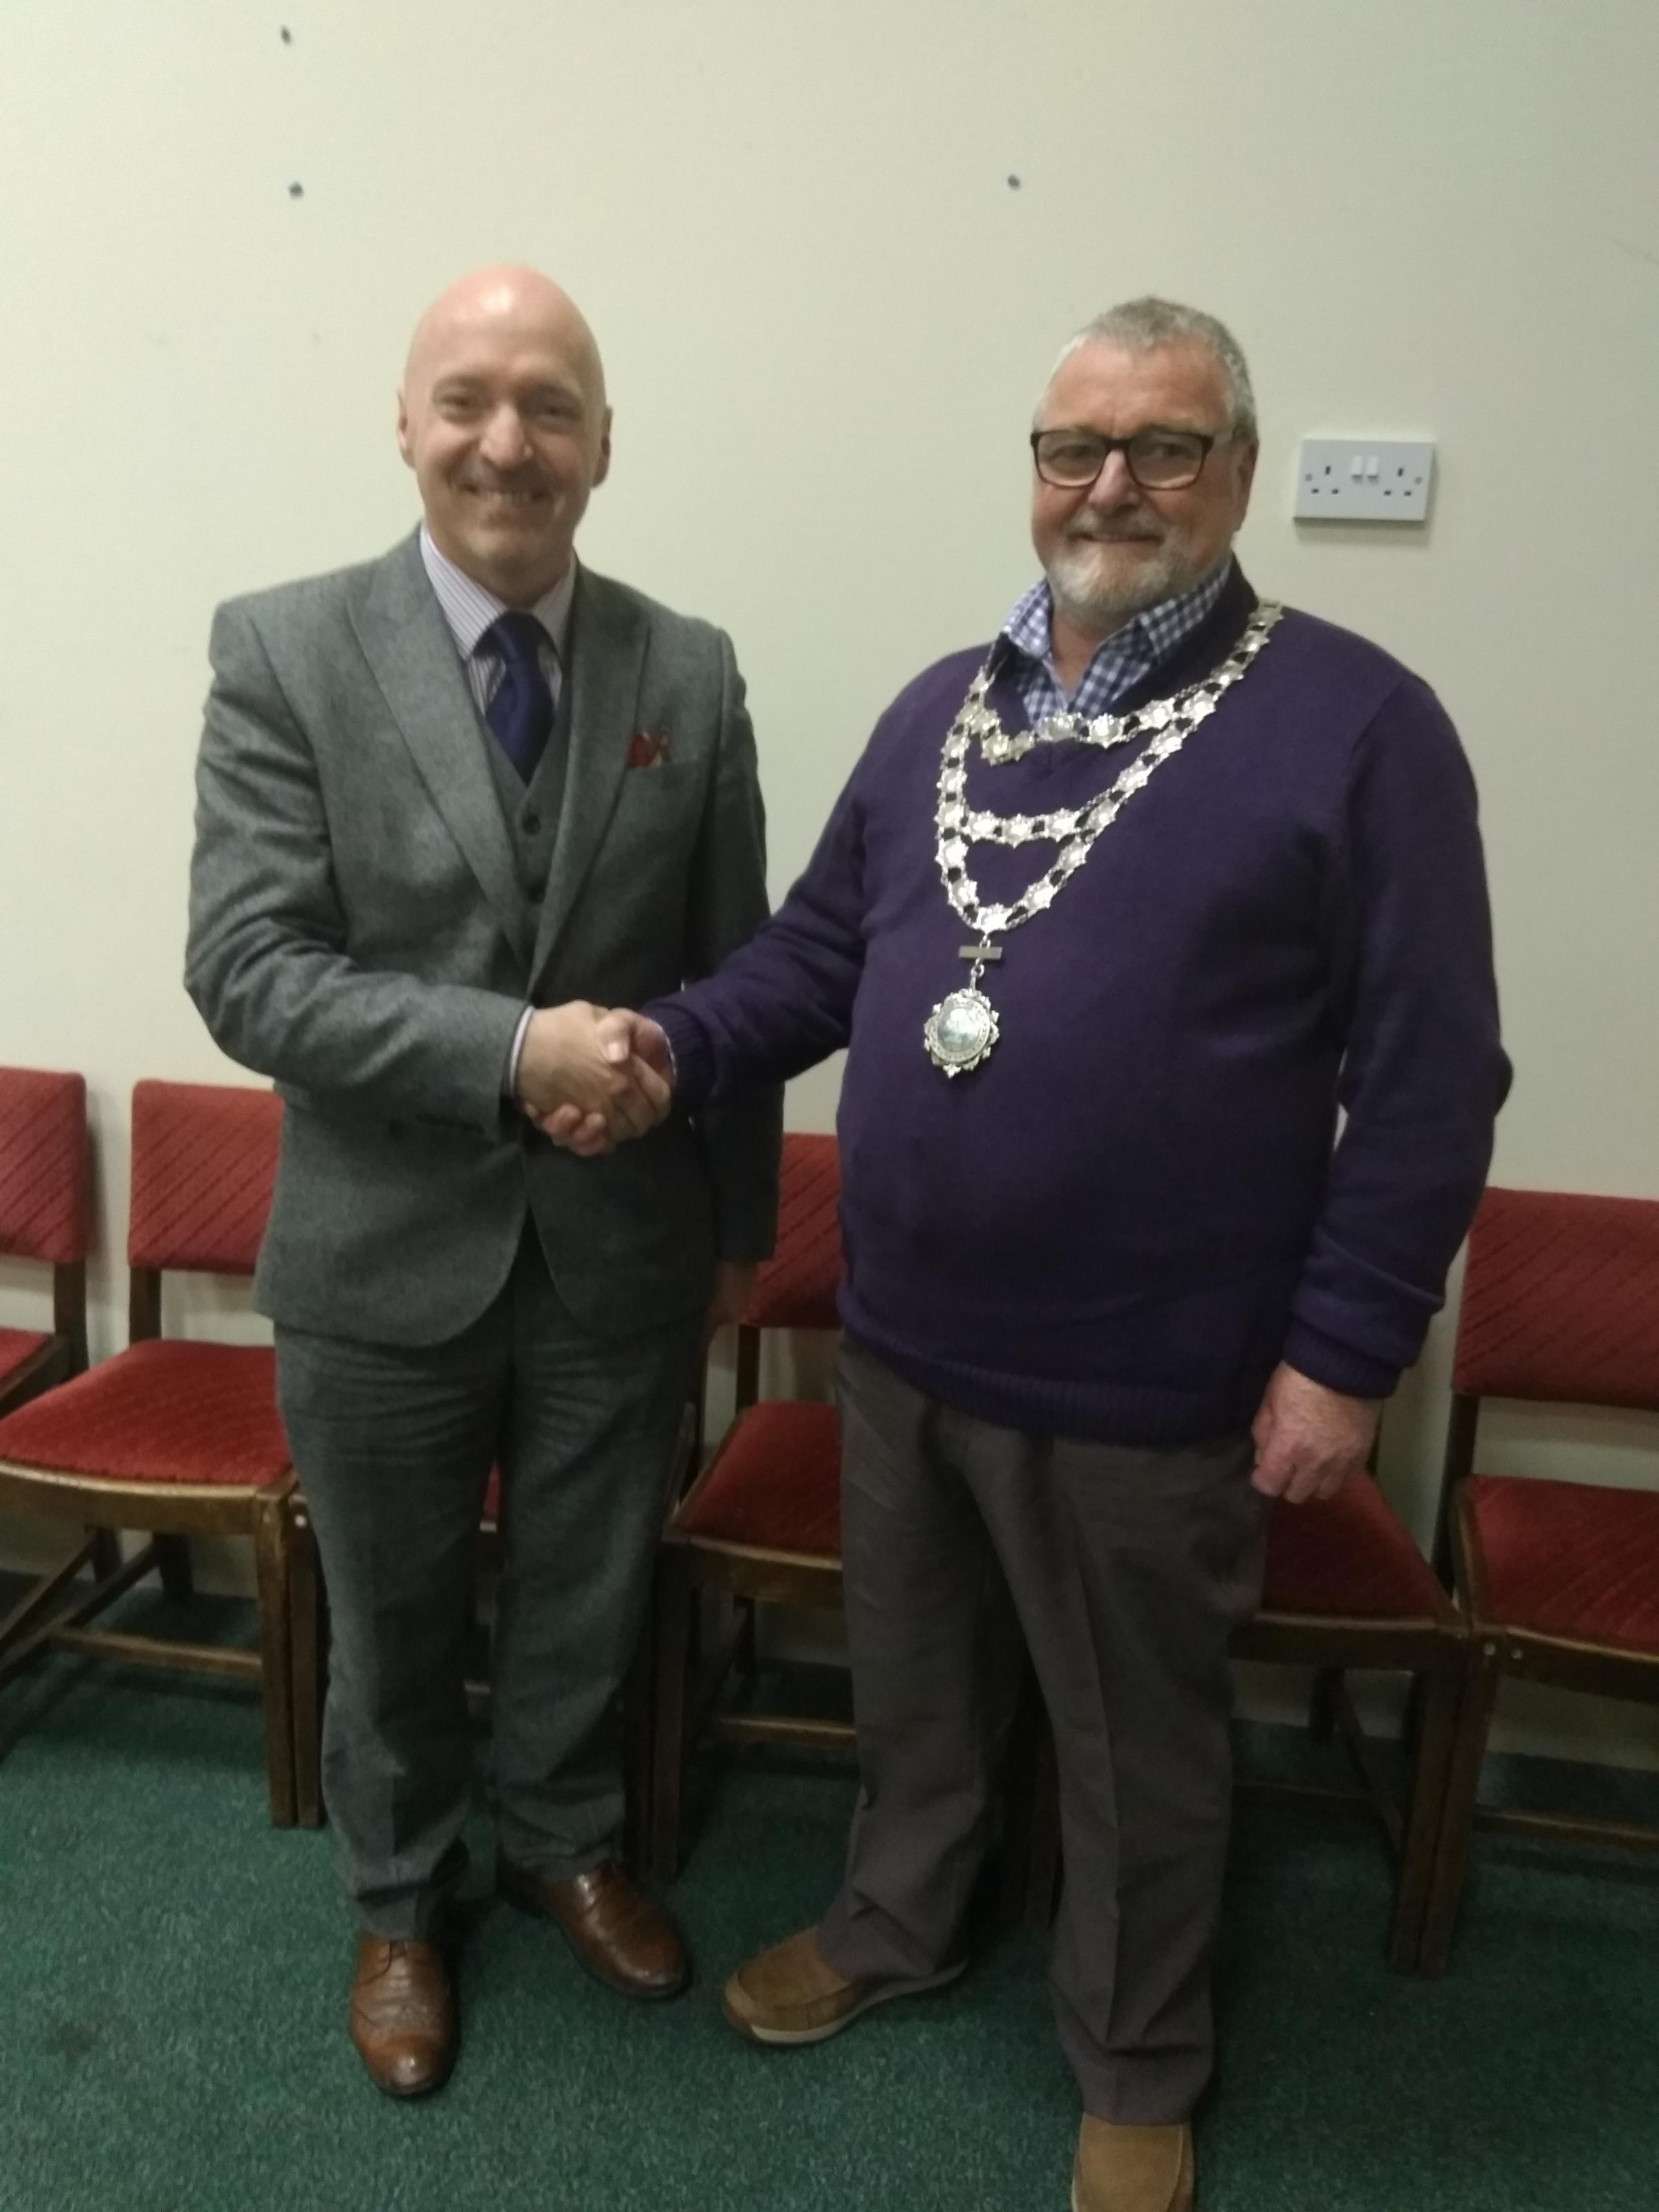 Outgoing mayor Cllr Simon Hancock with incoming mayor William McGarvie